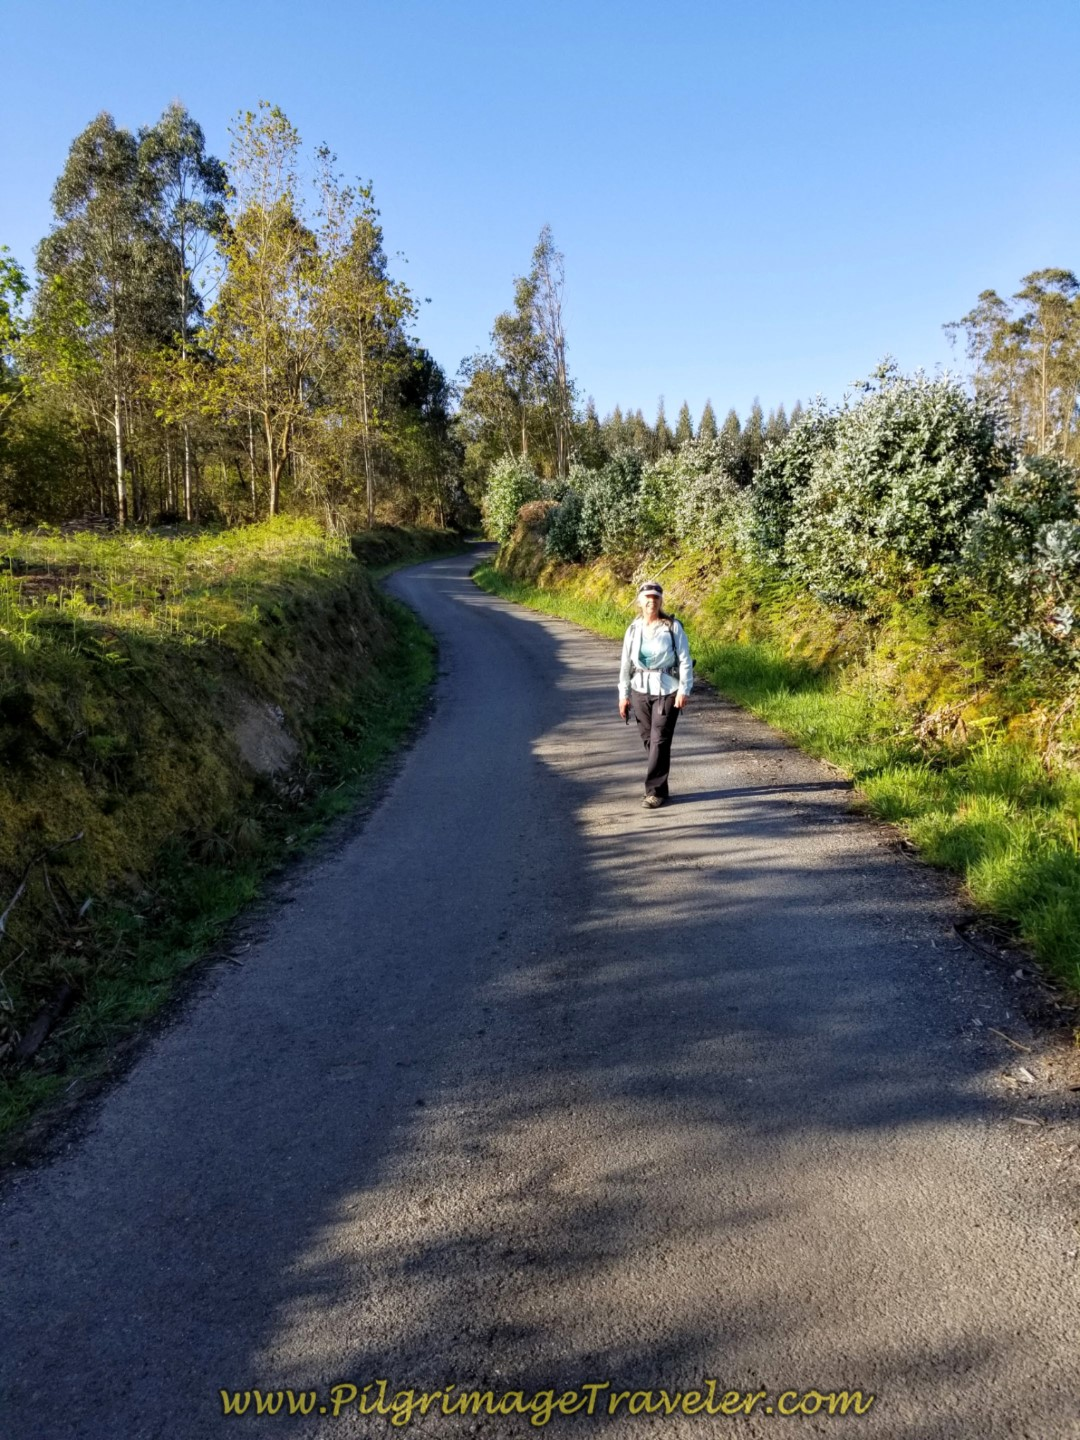 Elle on Road to Cultivated Wooded Area on day two of the La Coruña Arm of the Camino Inglés